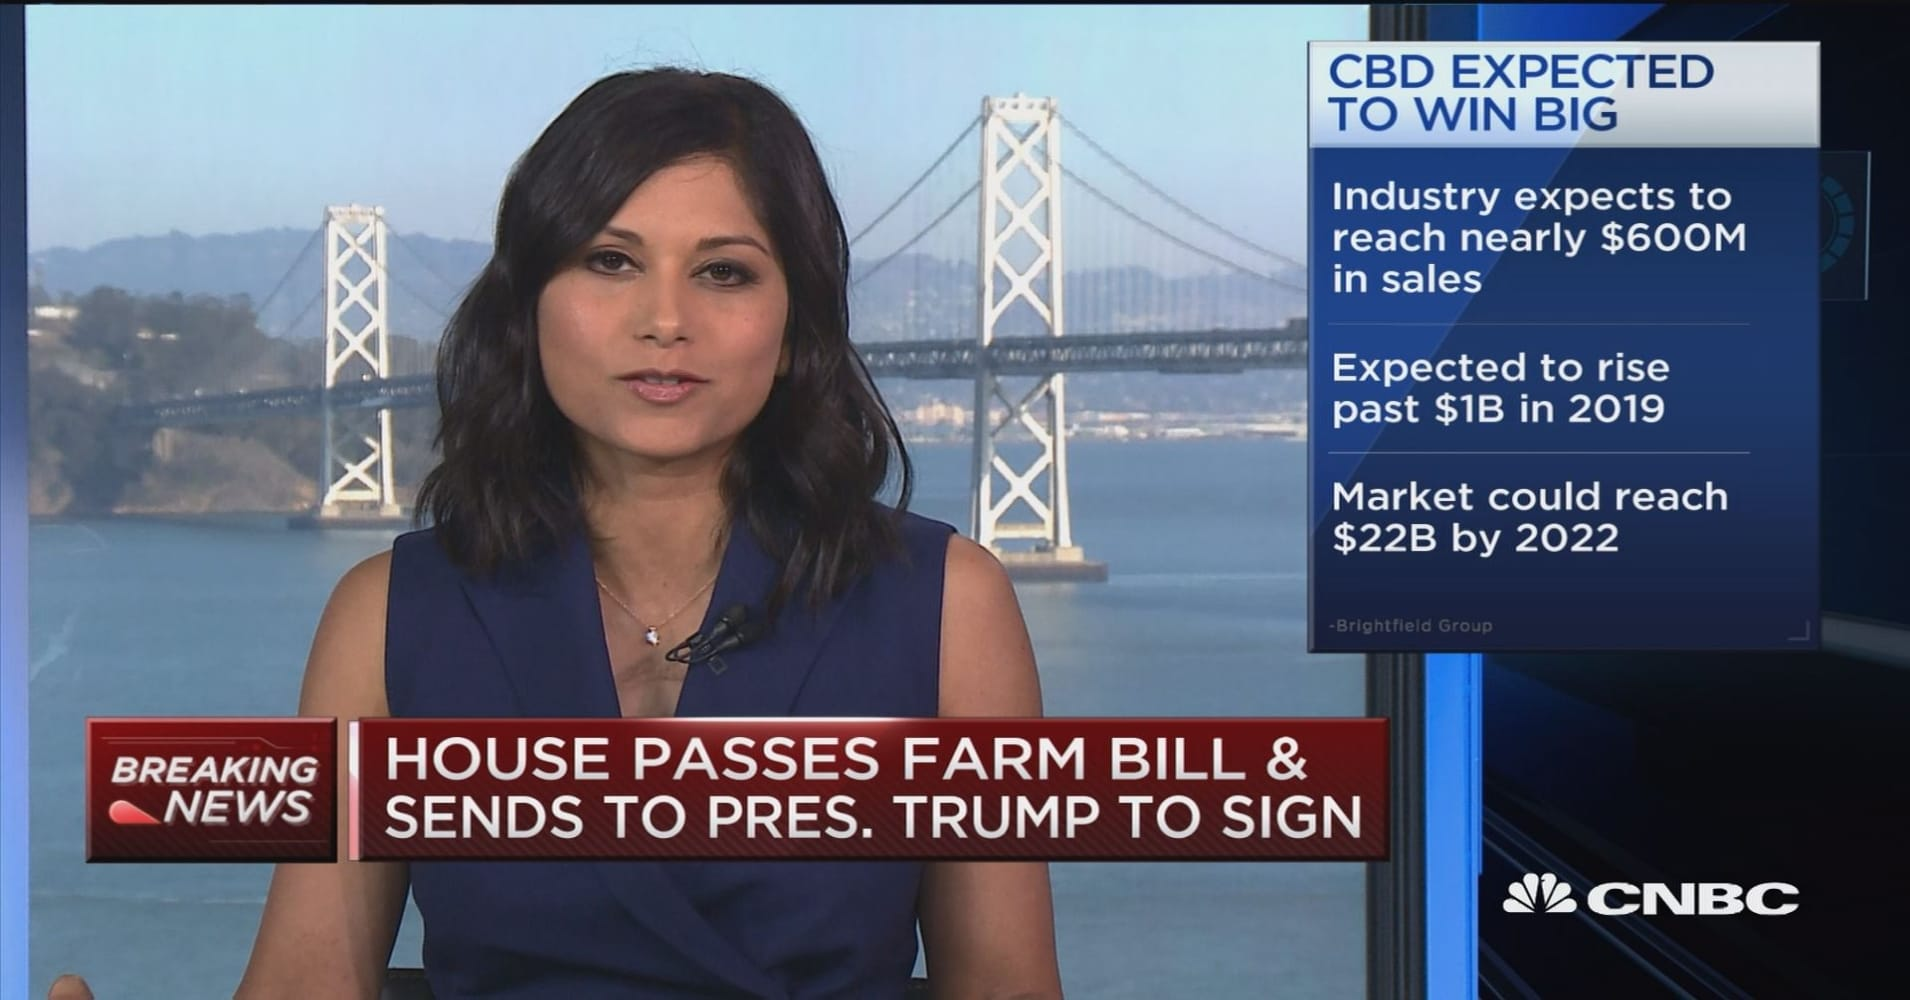 Farm bill may be big win for hemp-based product manufacturers